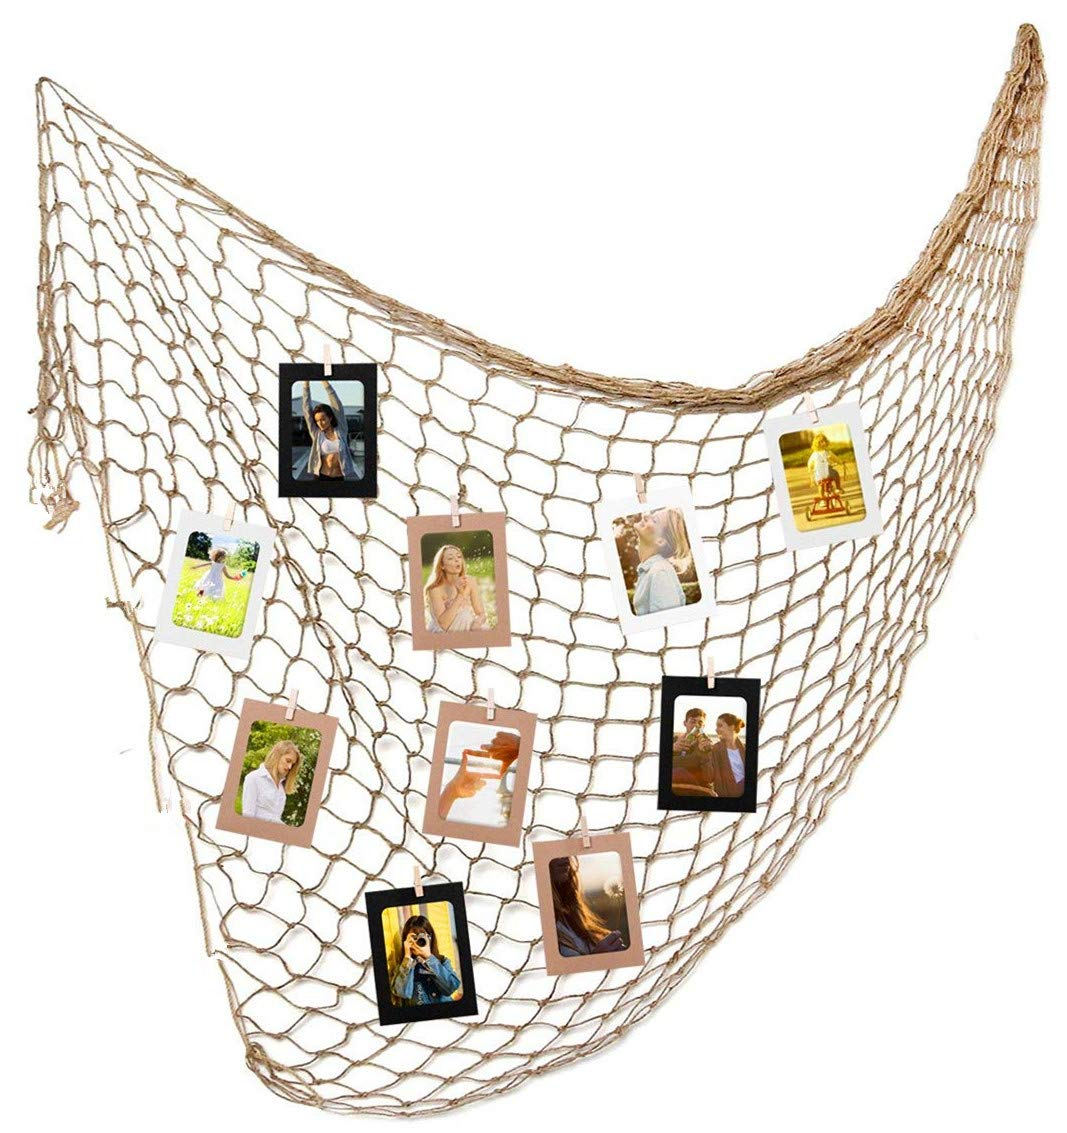 tensky Photo Hanging Display with 30 Clip Fishing Net Wall Decor - Picture Frames & Prints Multi Photos Organizer & Collage Artworks - Nautical Decorative Dorm Bedroom Christmas Decorations by tensky